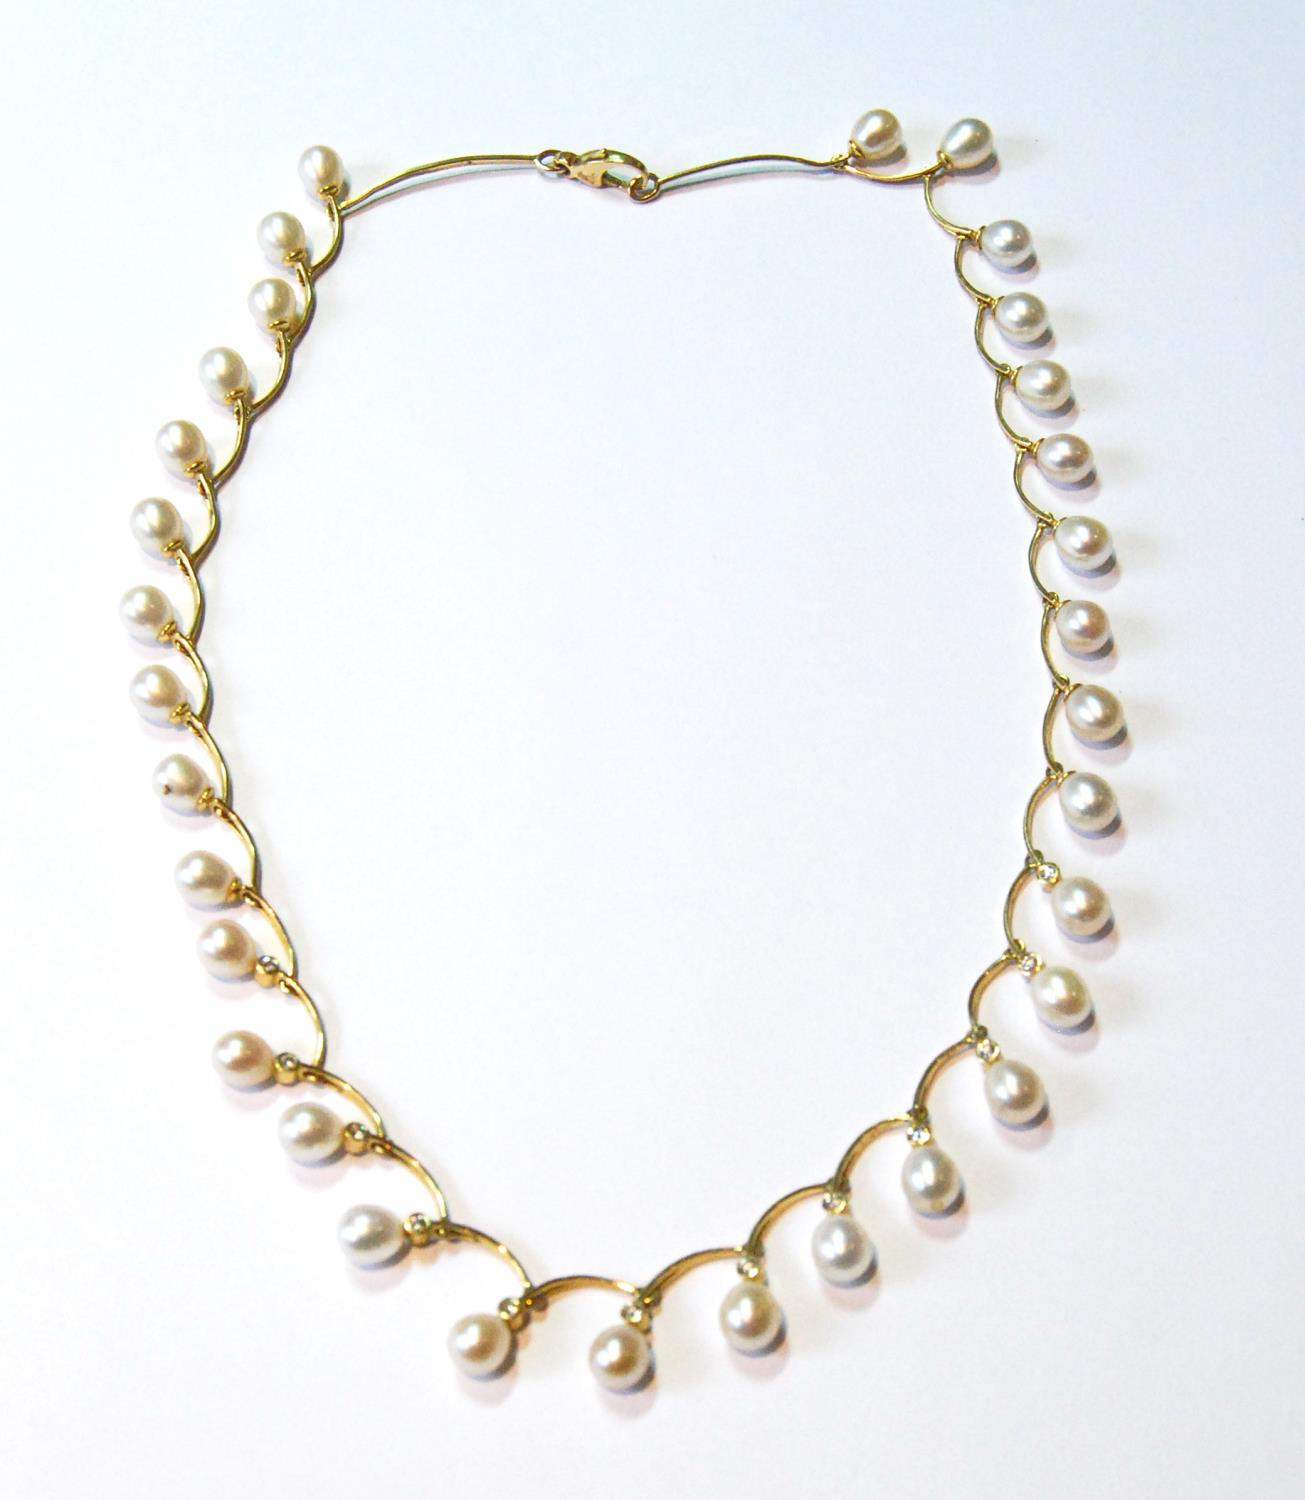 Gold and cultured pearl necklace with twelve small diamonds, collet-set, '750', 25g gross.